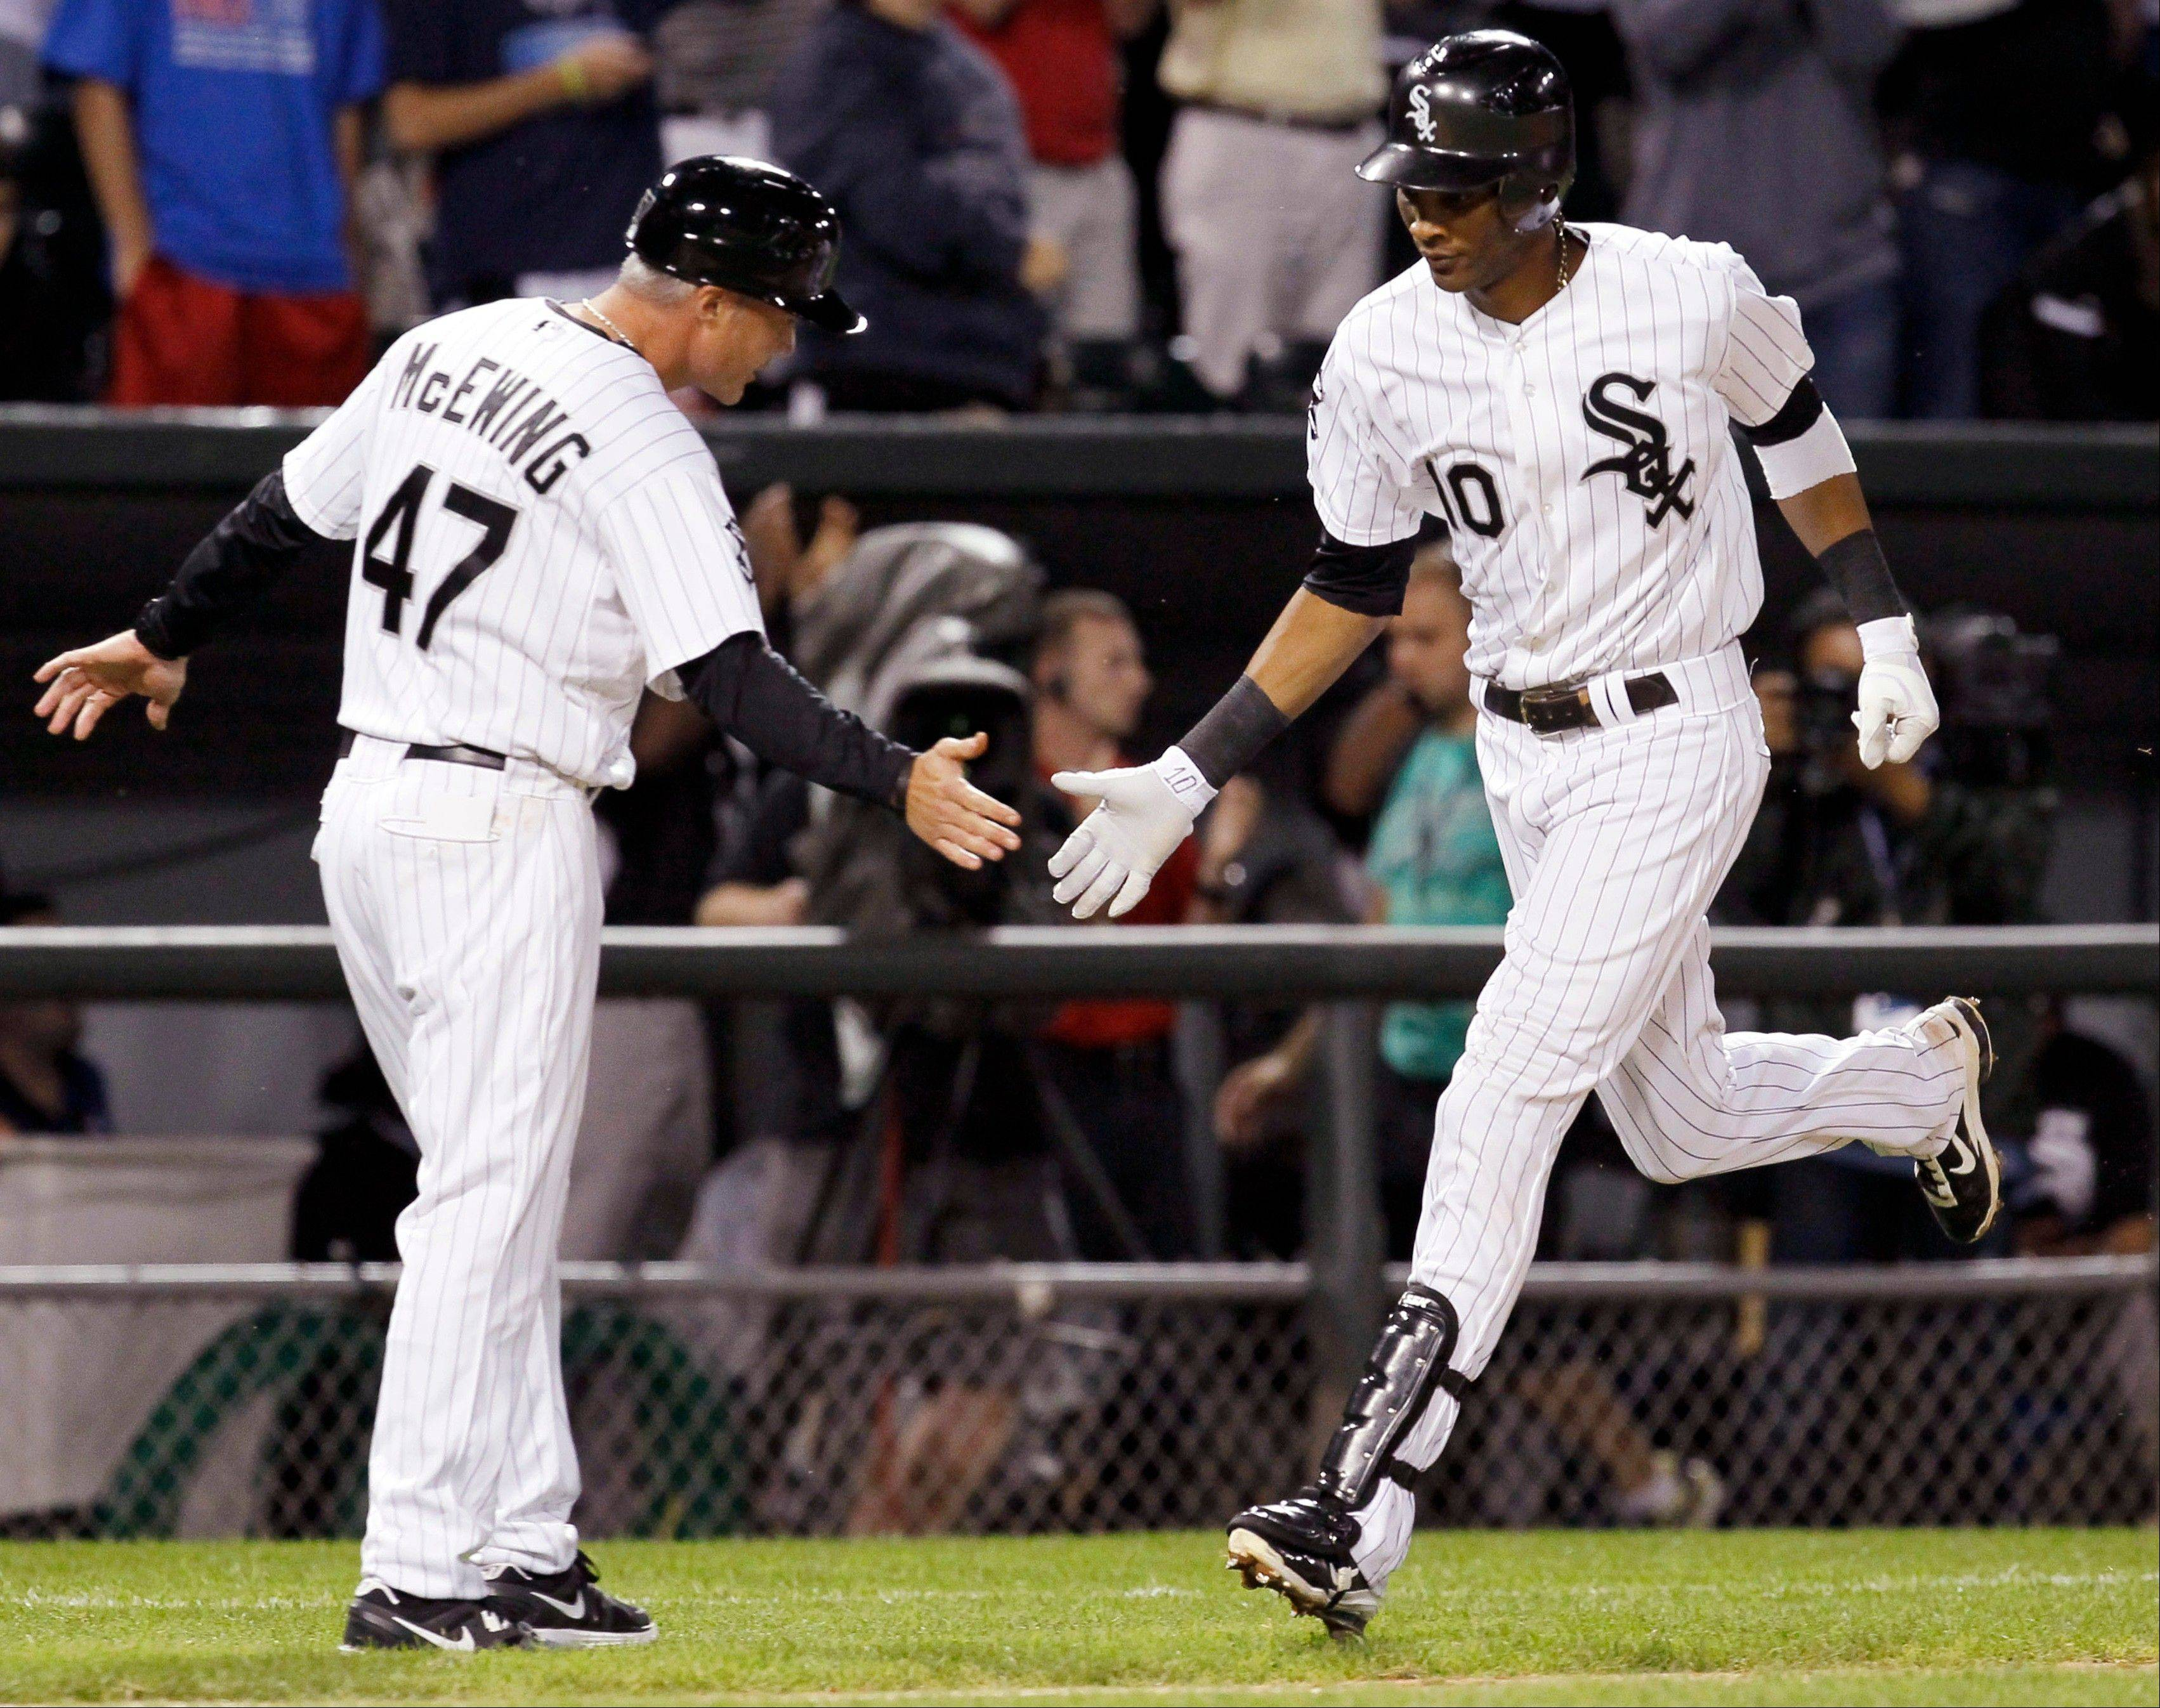 Chicago White Sox's Alexei Ramirez, right, is greeted by third base coach Joe McEwing after hitting a two-run home run off New York Yankees relief pitcher Boone Logan, also scoring A.J. Pierzynski, during the seventh inning of a baseball game, Monday in Chicago.